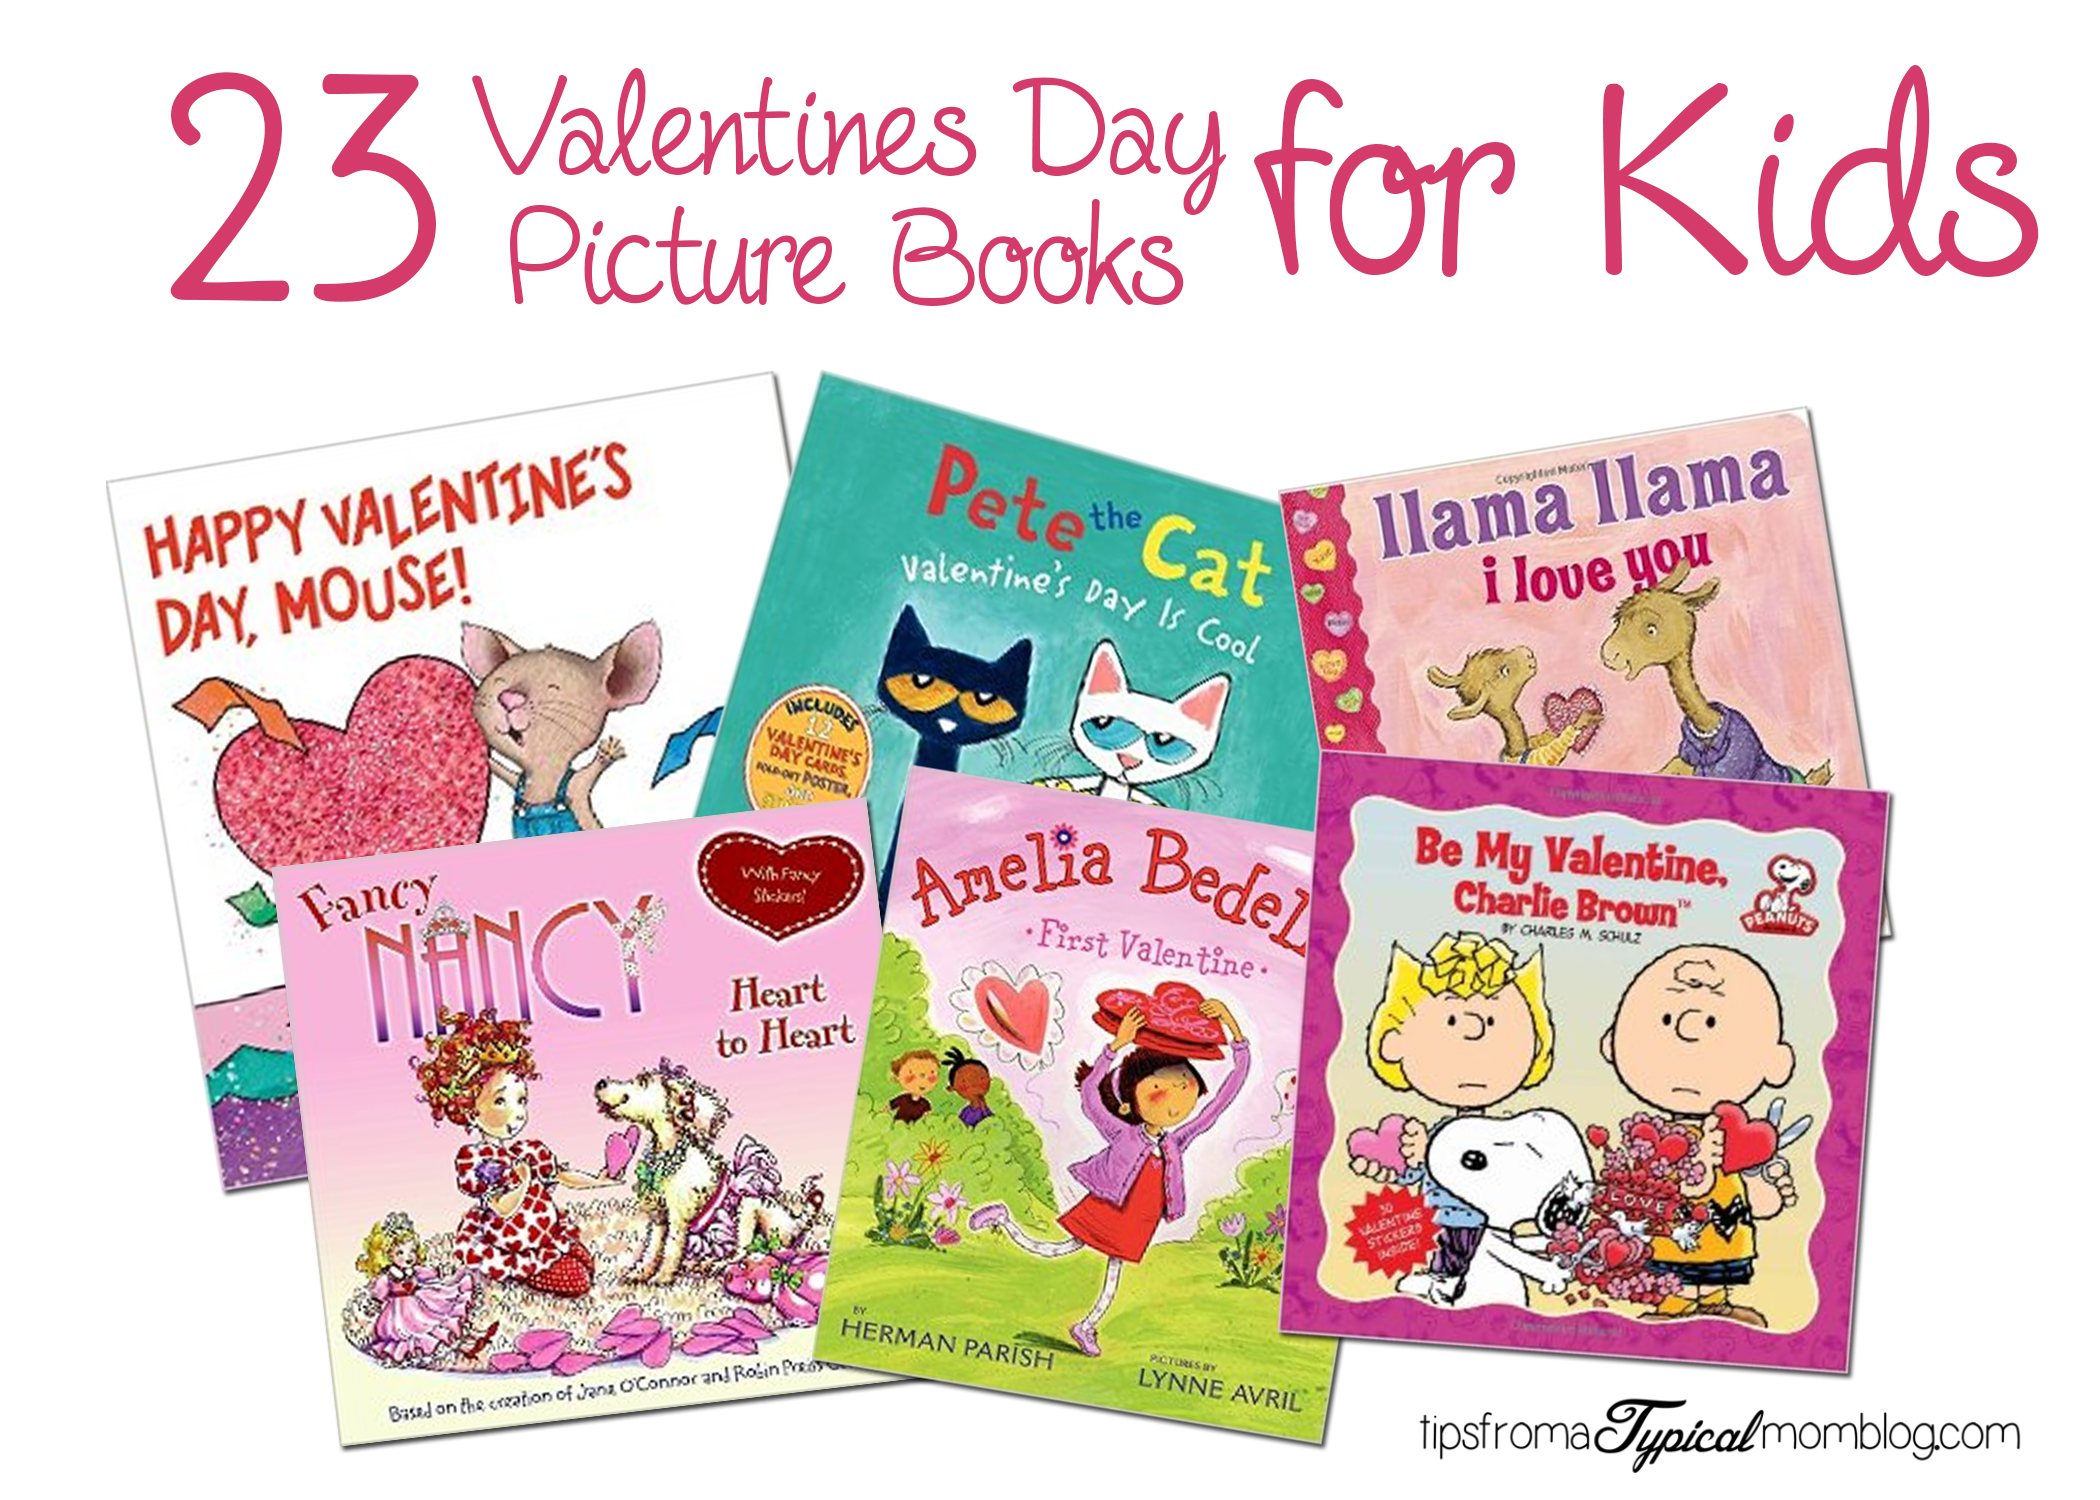 23 valentines day picture books for kids tips from a typical mom